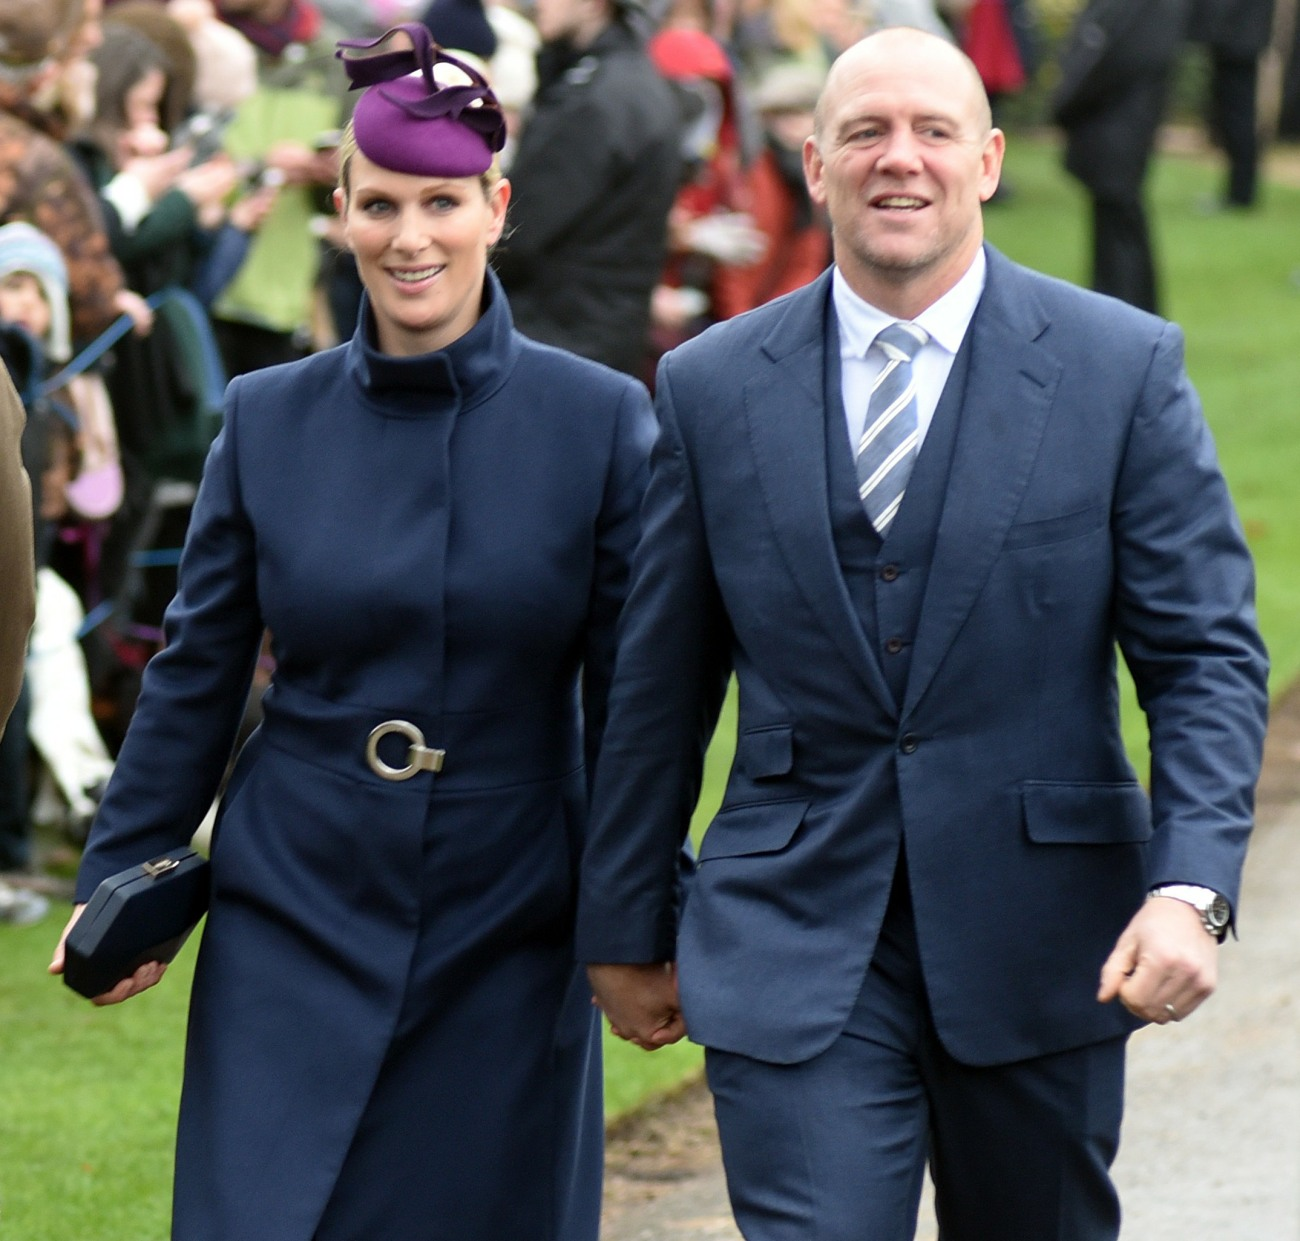 Mike and Zara Tindall arriving for the Xmas Day service at Sandringham Church, 25th December, 2018.